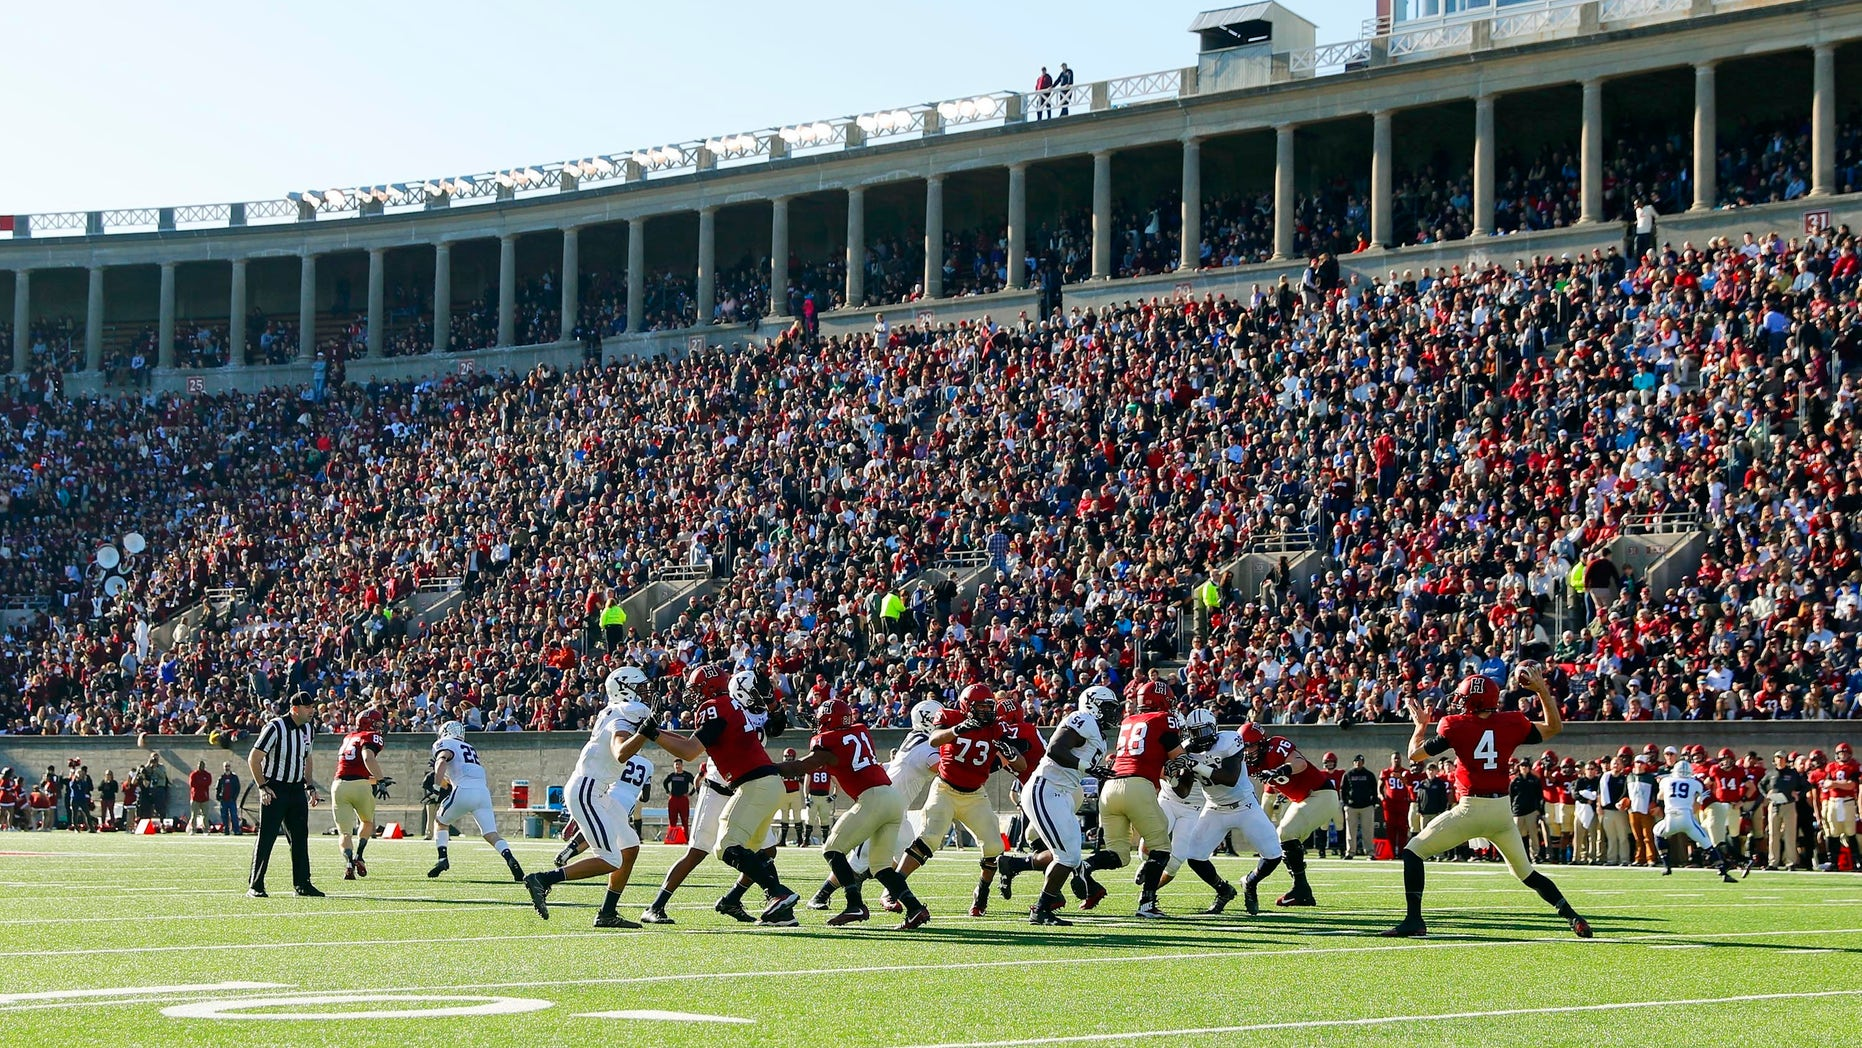 Harvard and Yale playing in Cambridge on Saturday.